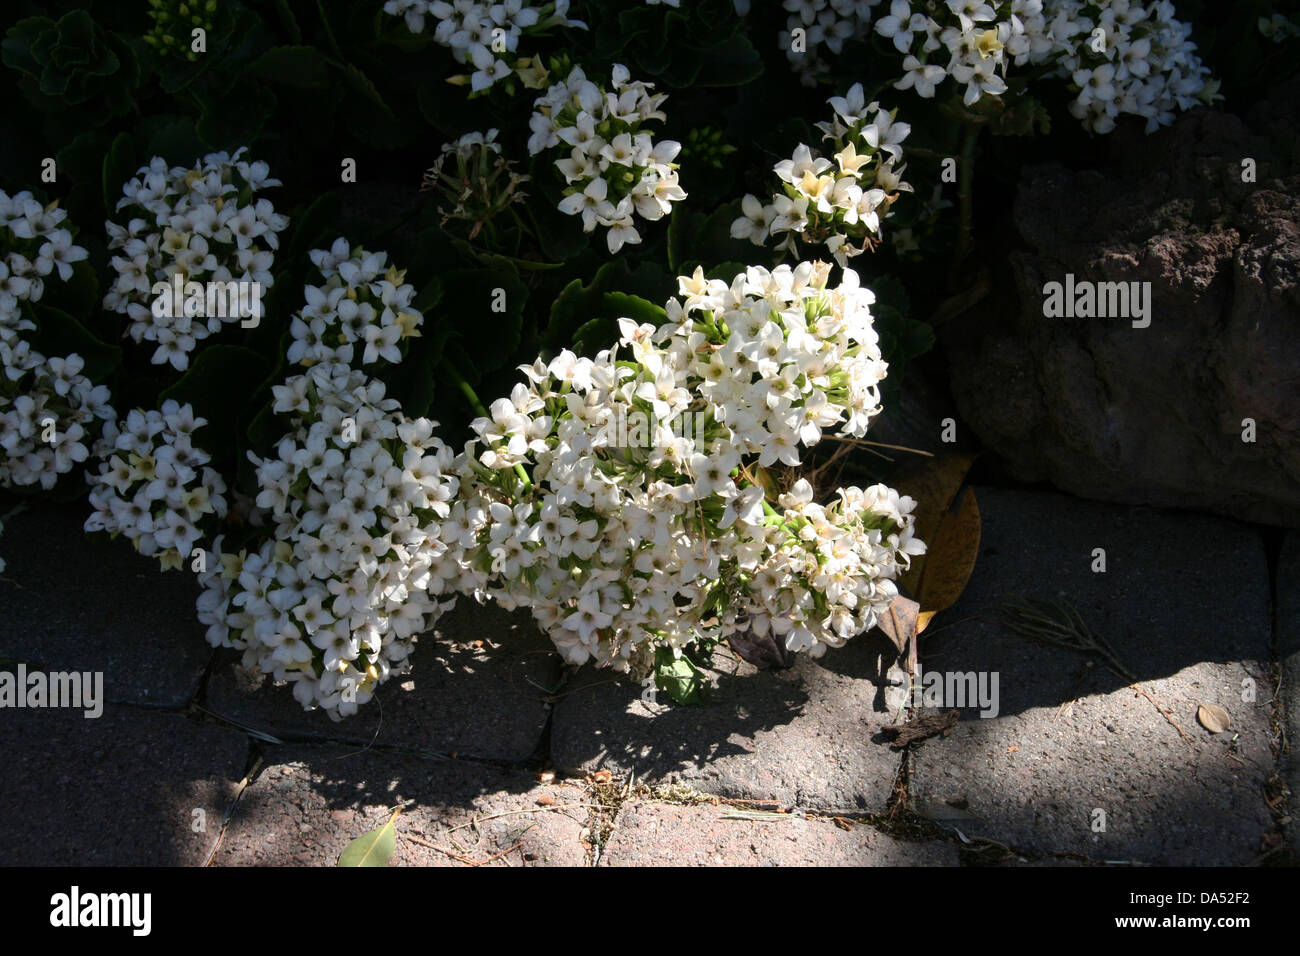 A cluster of small white flowers stock photo 57889414 alamy a cluster of small white flowers mightylinksfo